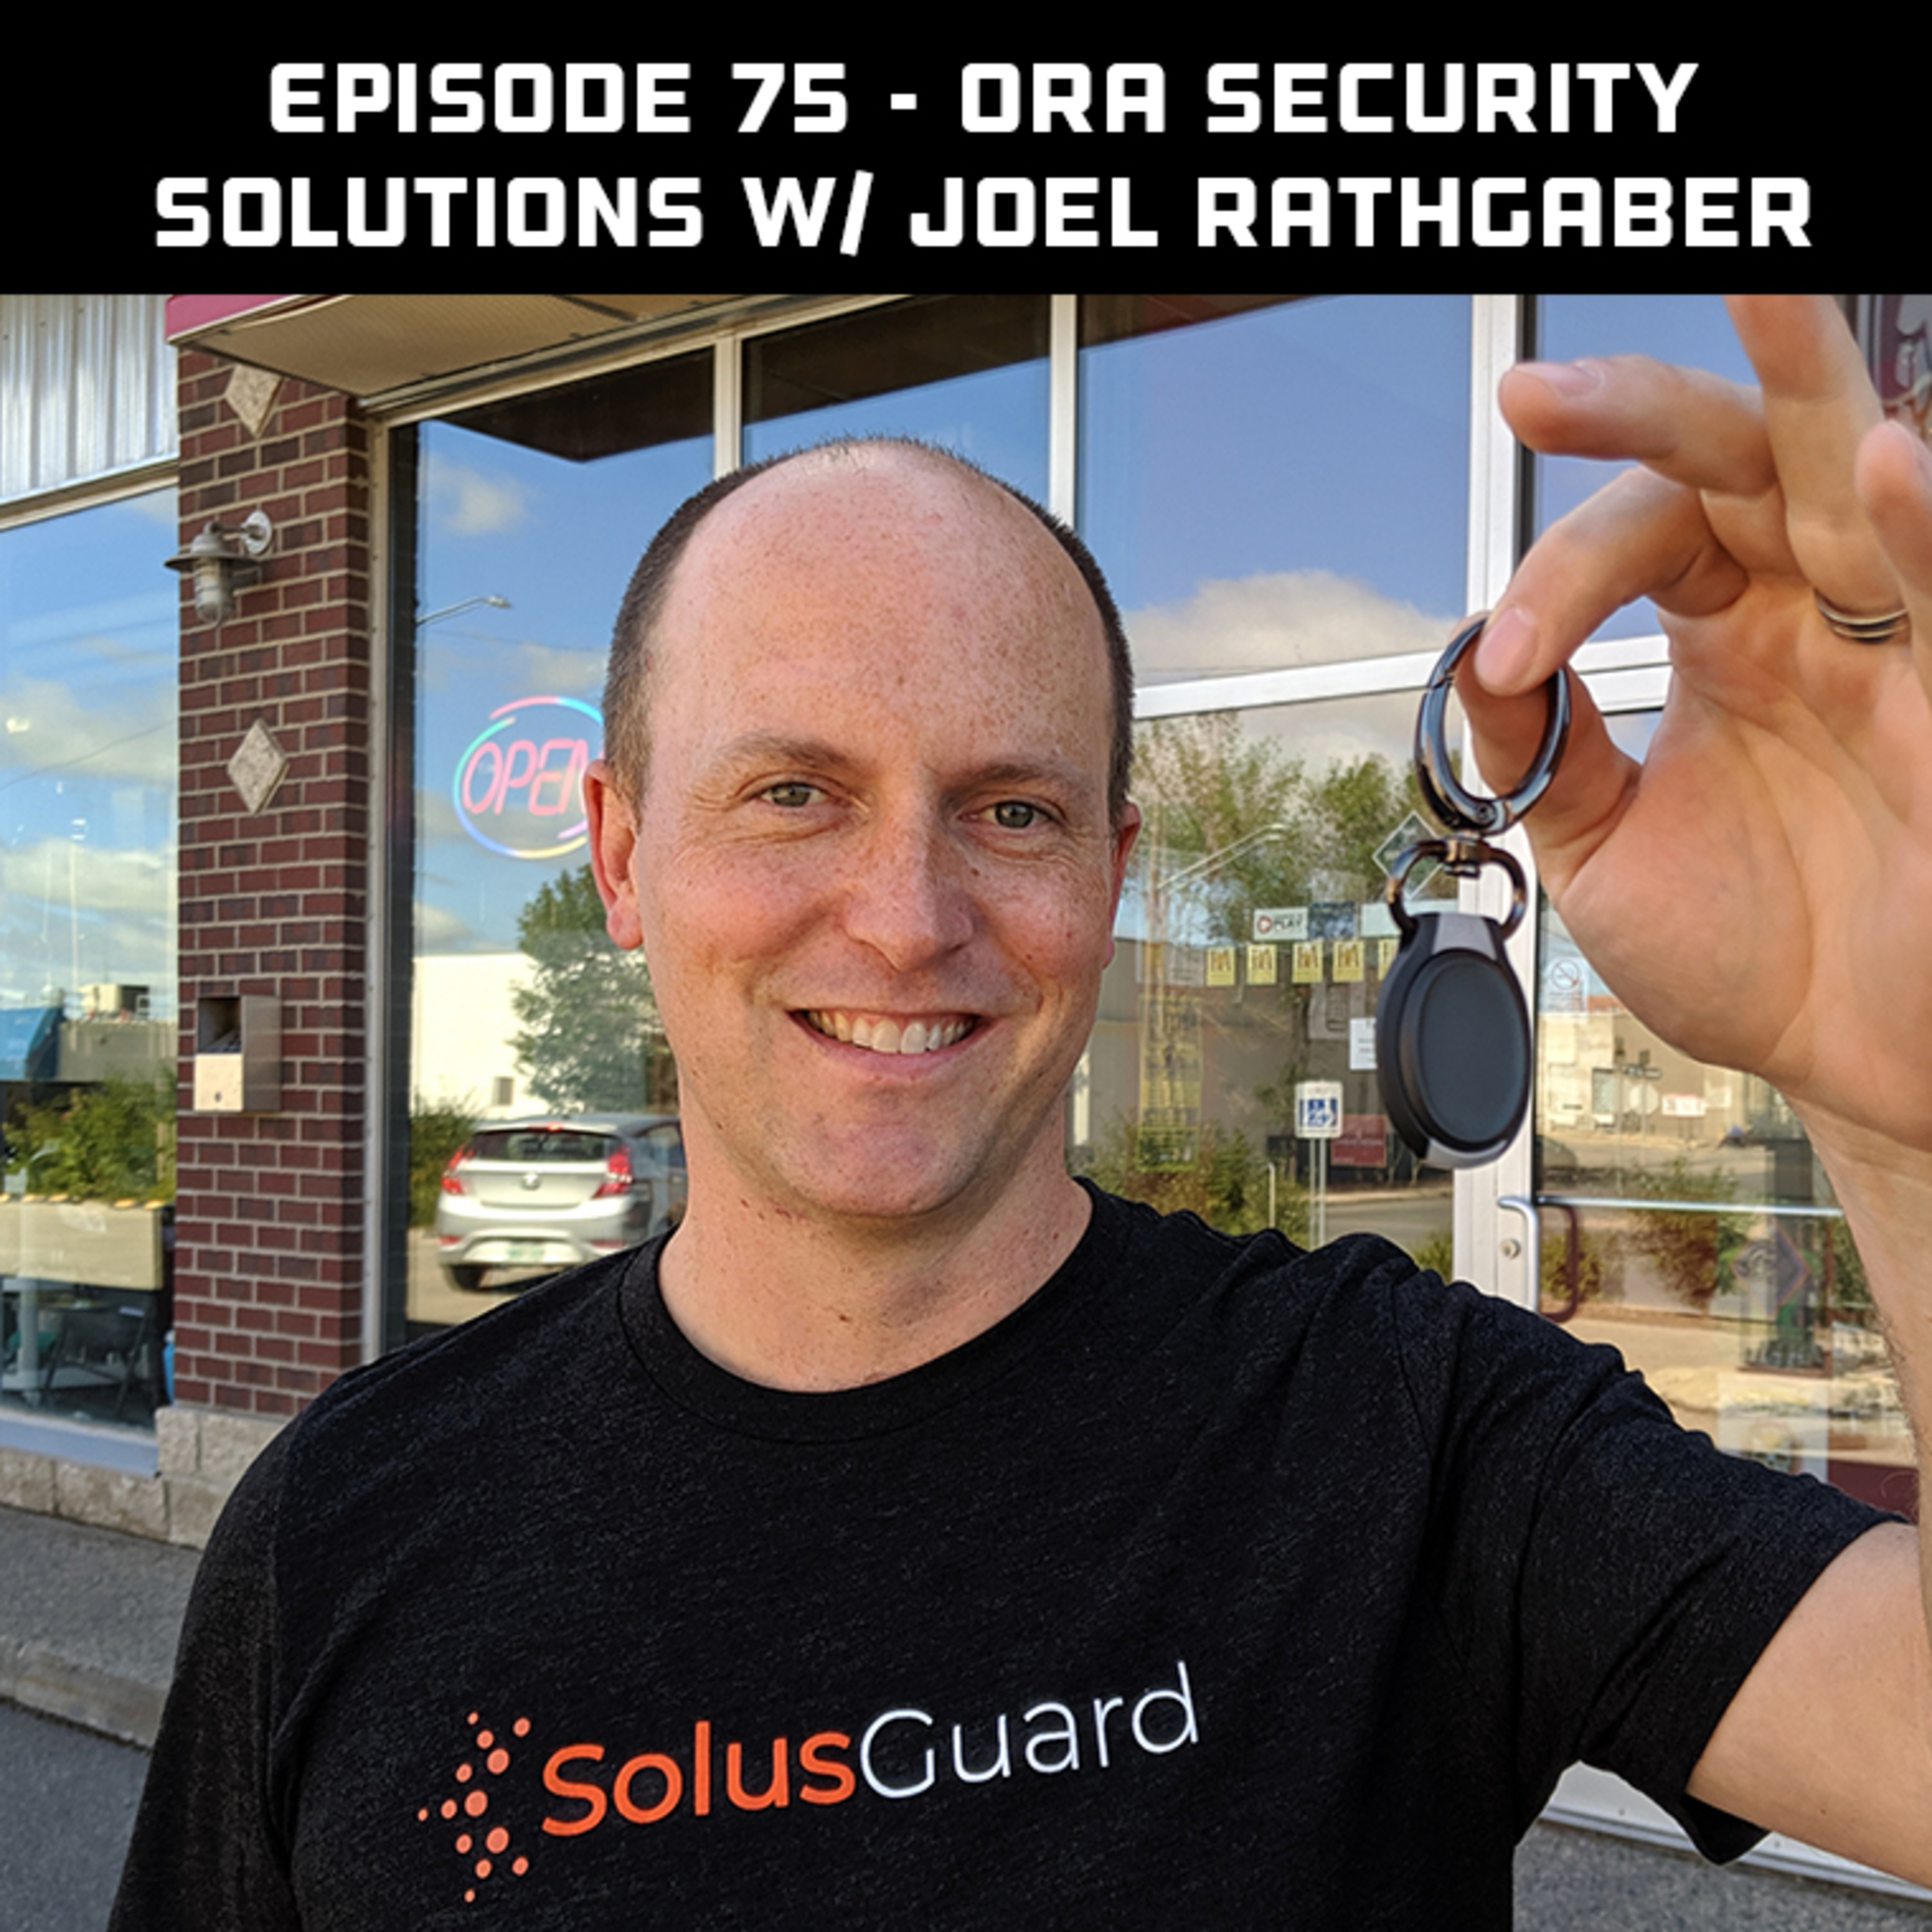 ORA Security Solutions with Joel Rathgaber